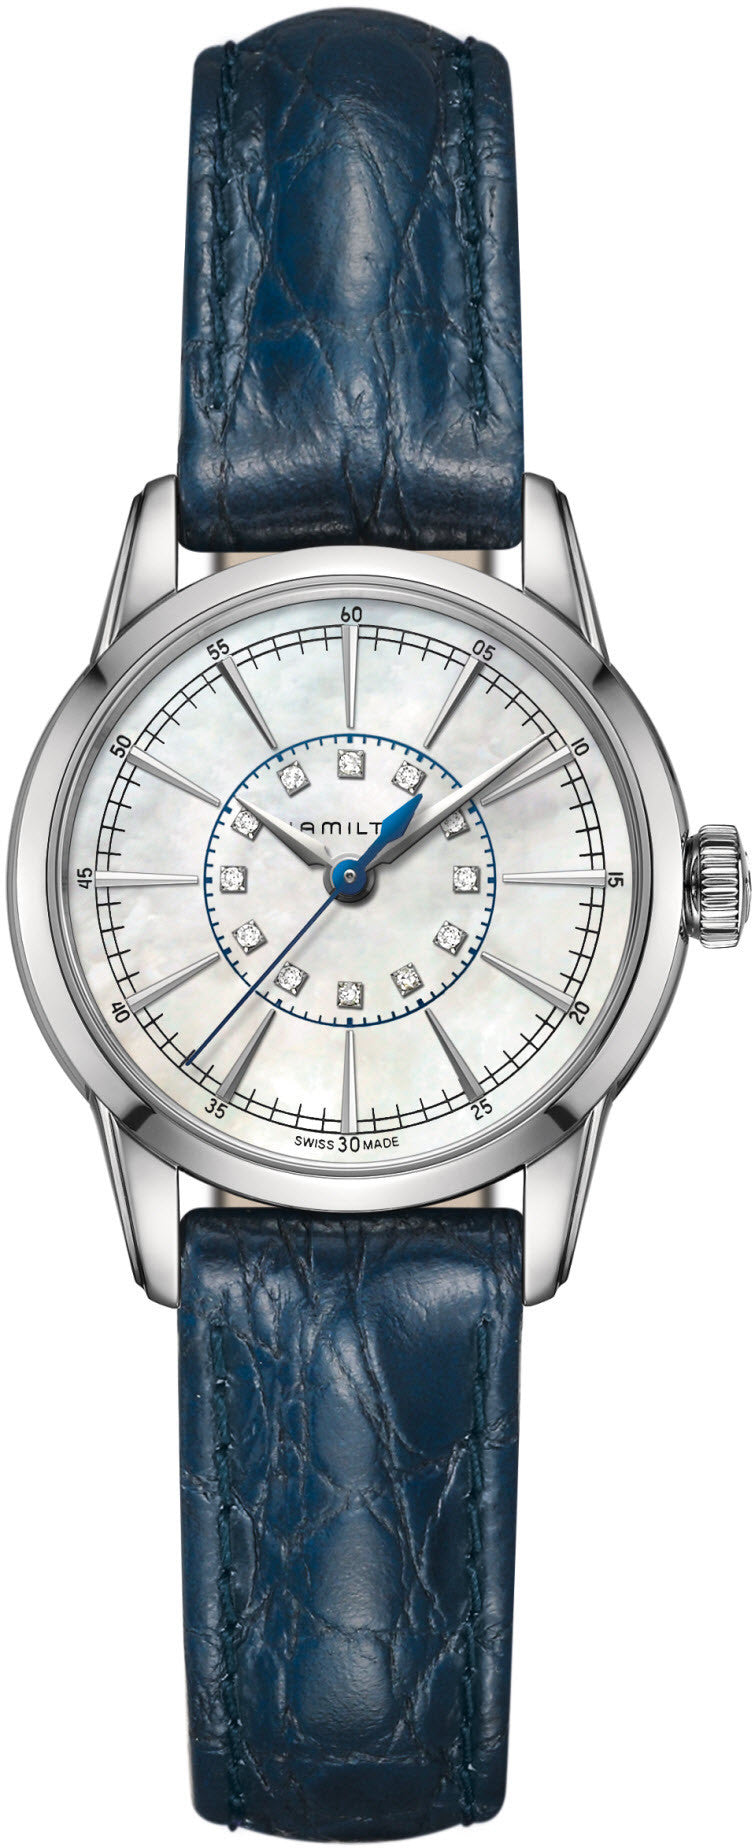 Hamilton Watch American Classic Rail Road Lady Quartz